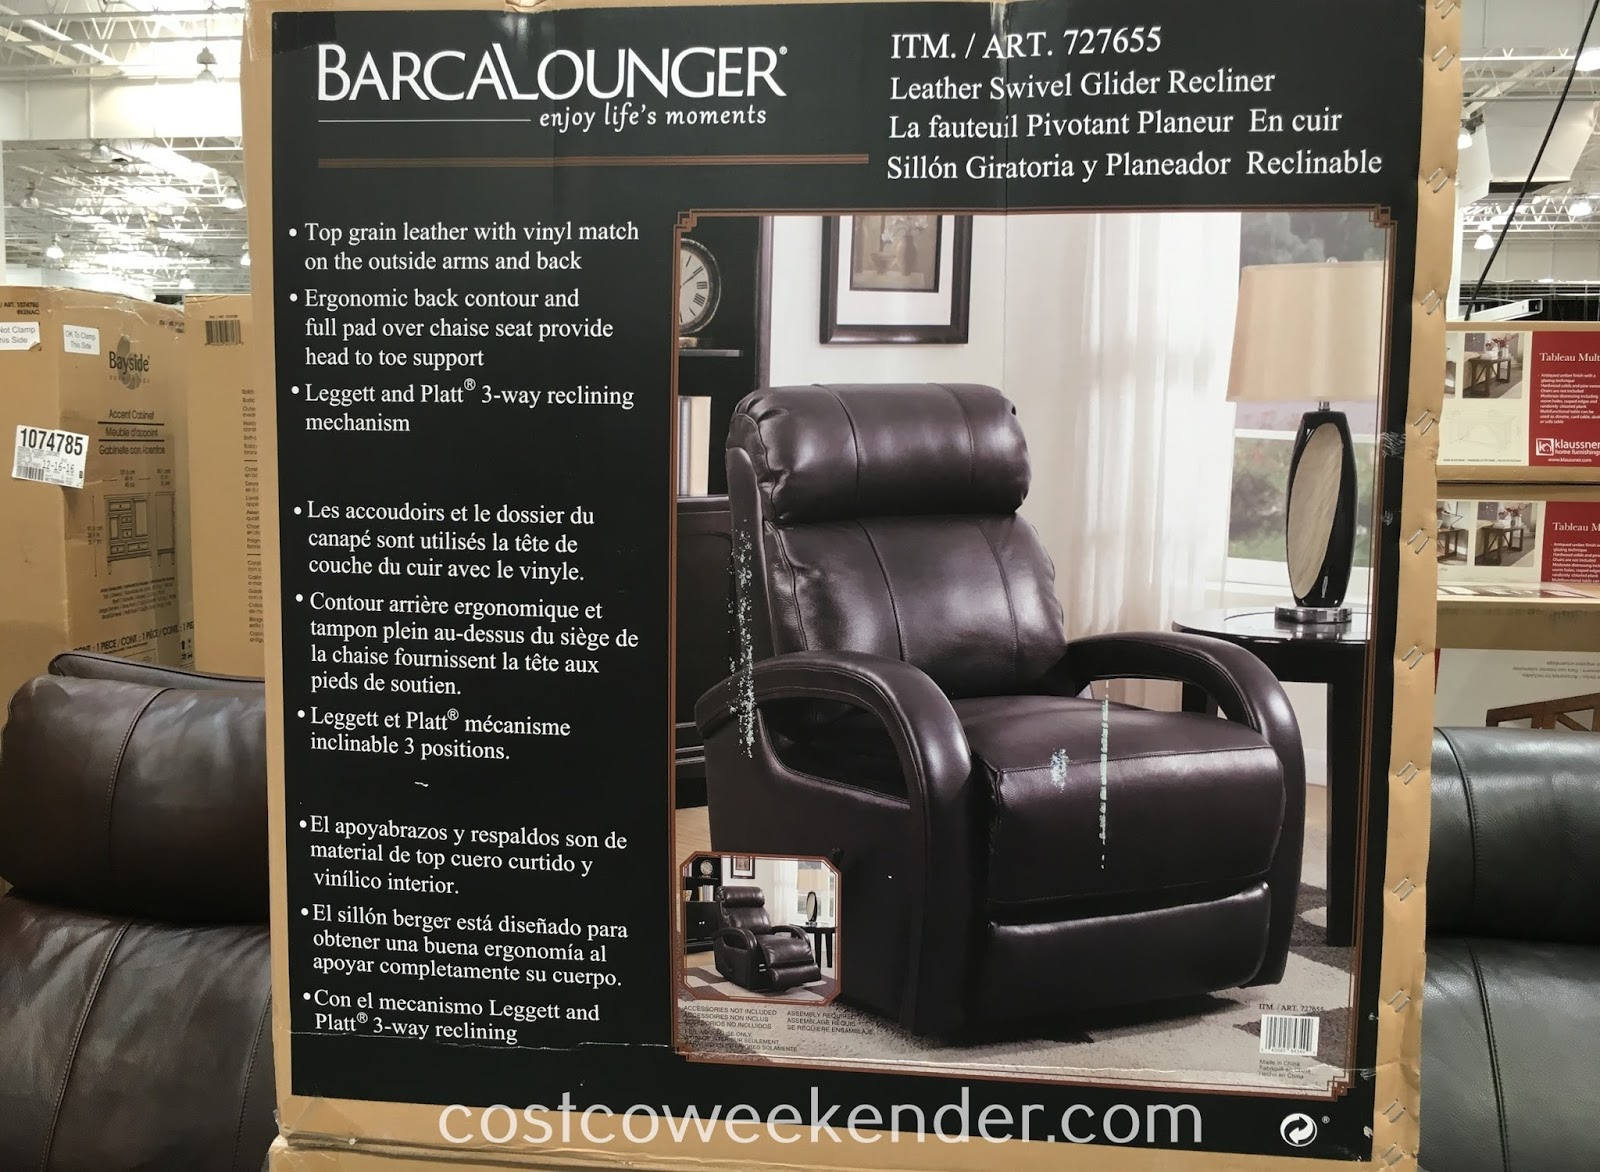 Costco 727655 - Barcalounger Leather Swivel Glider Recliner Chair - Nothing beats a comfortable chair